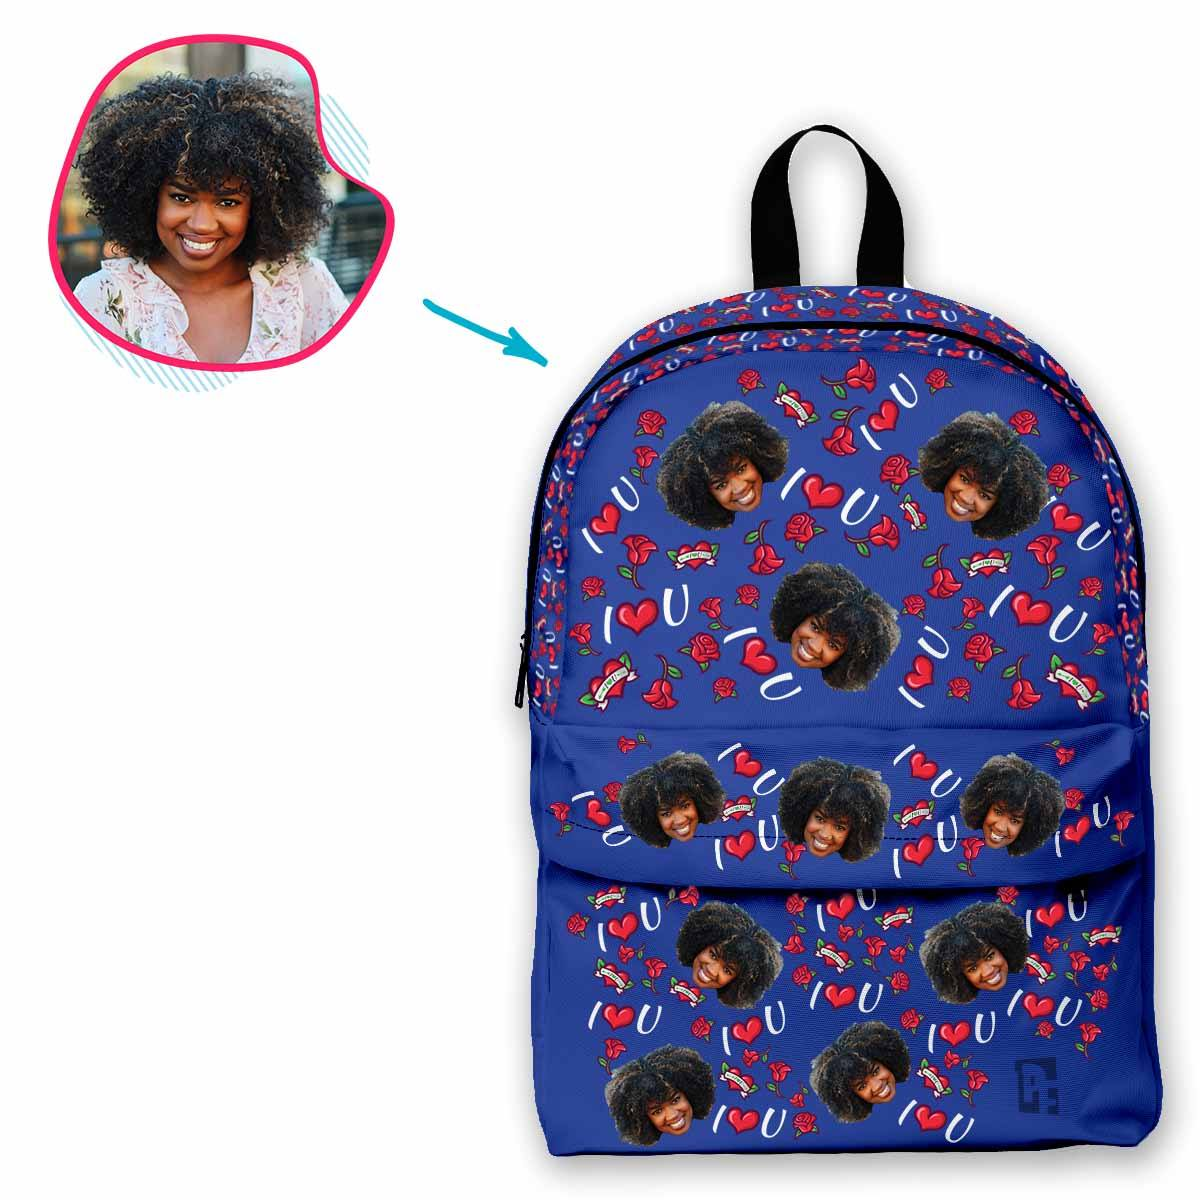 darkblue Valentines classic backpack personalized with photo of face printed on it